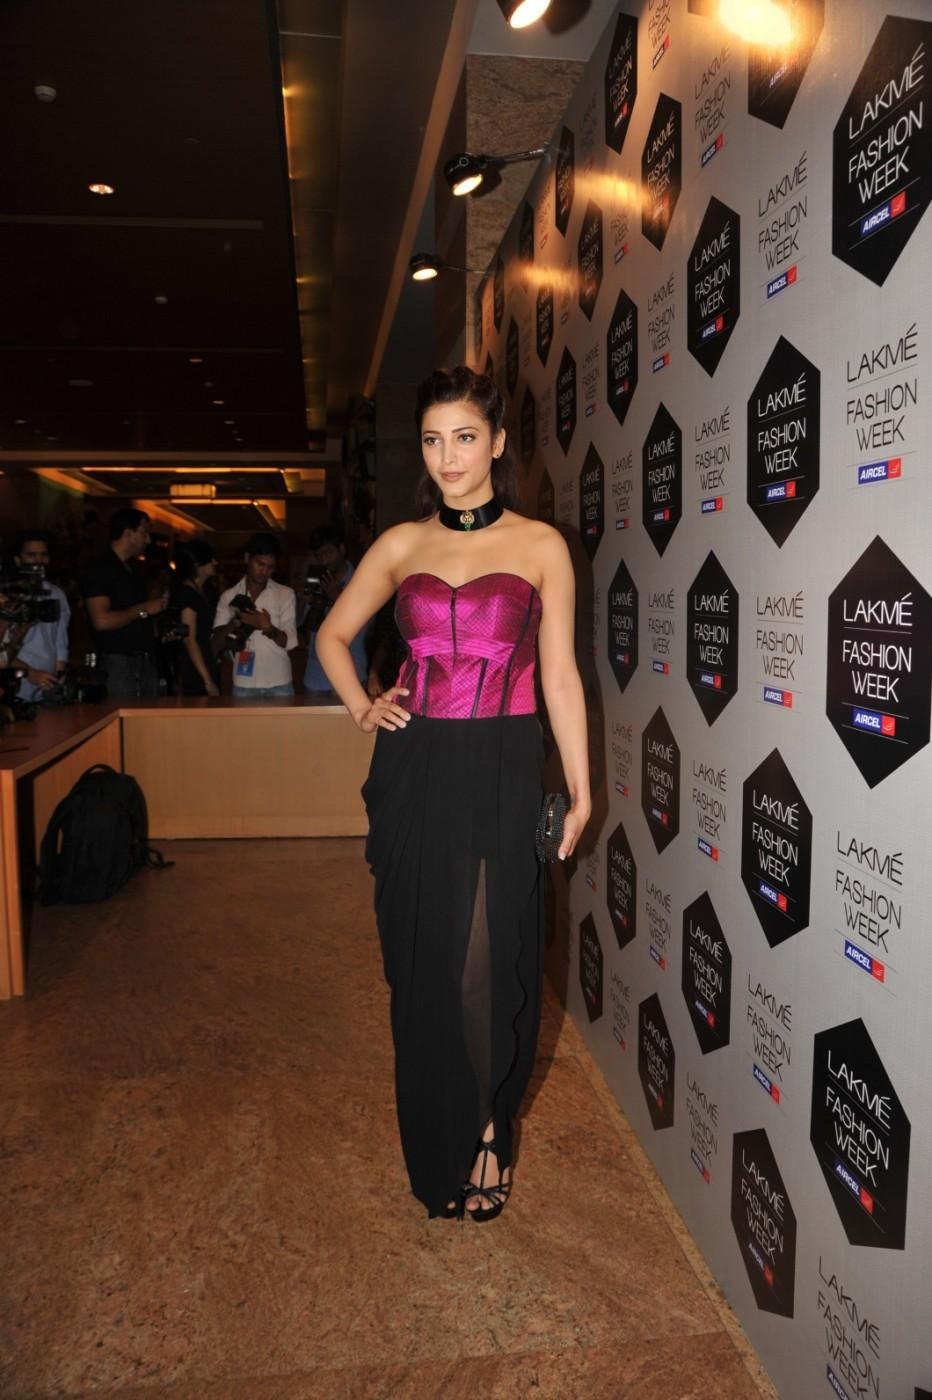 Shruti Haasan In Pink Top - Lakme Fashion Week 2012 Day 5 Photo